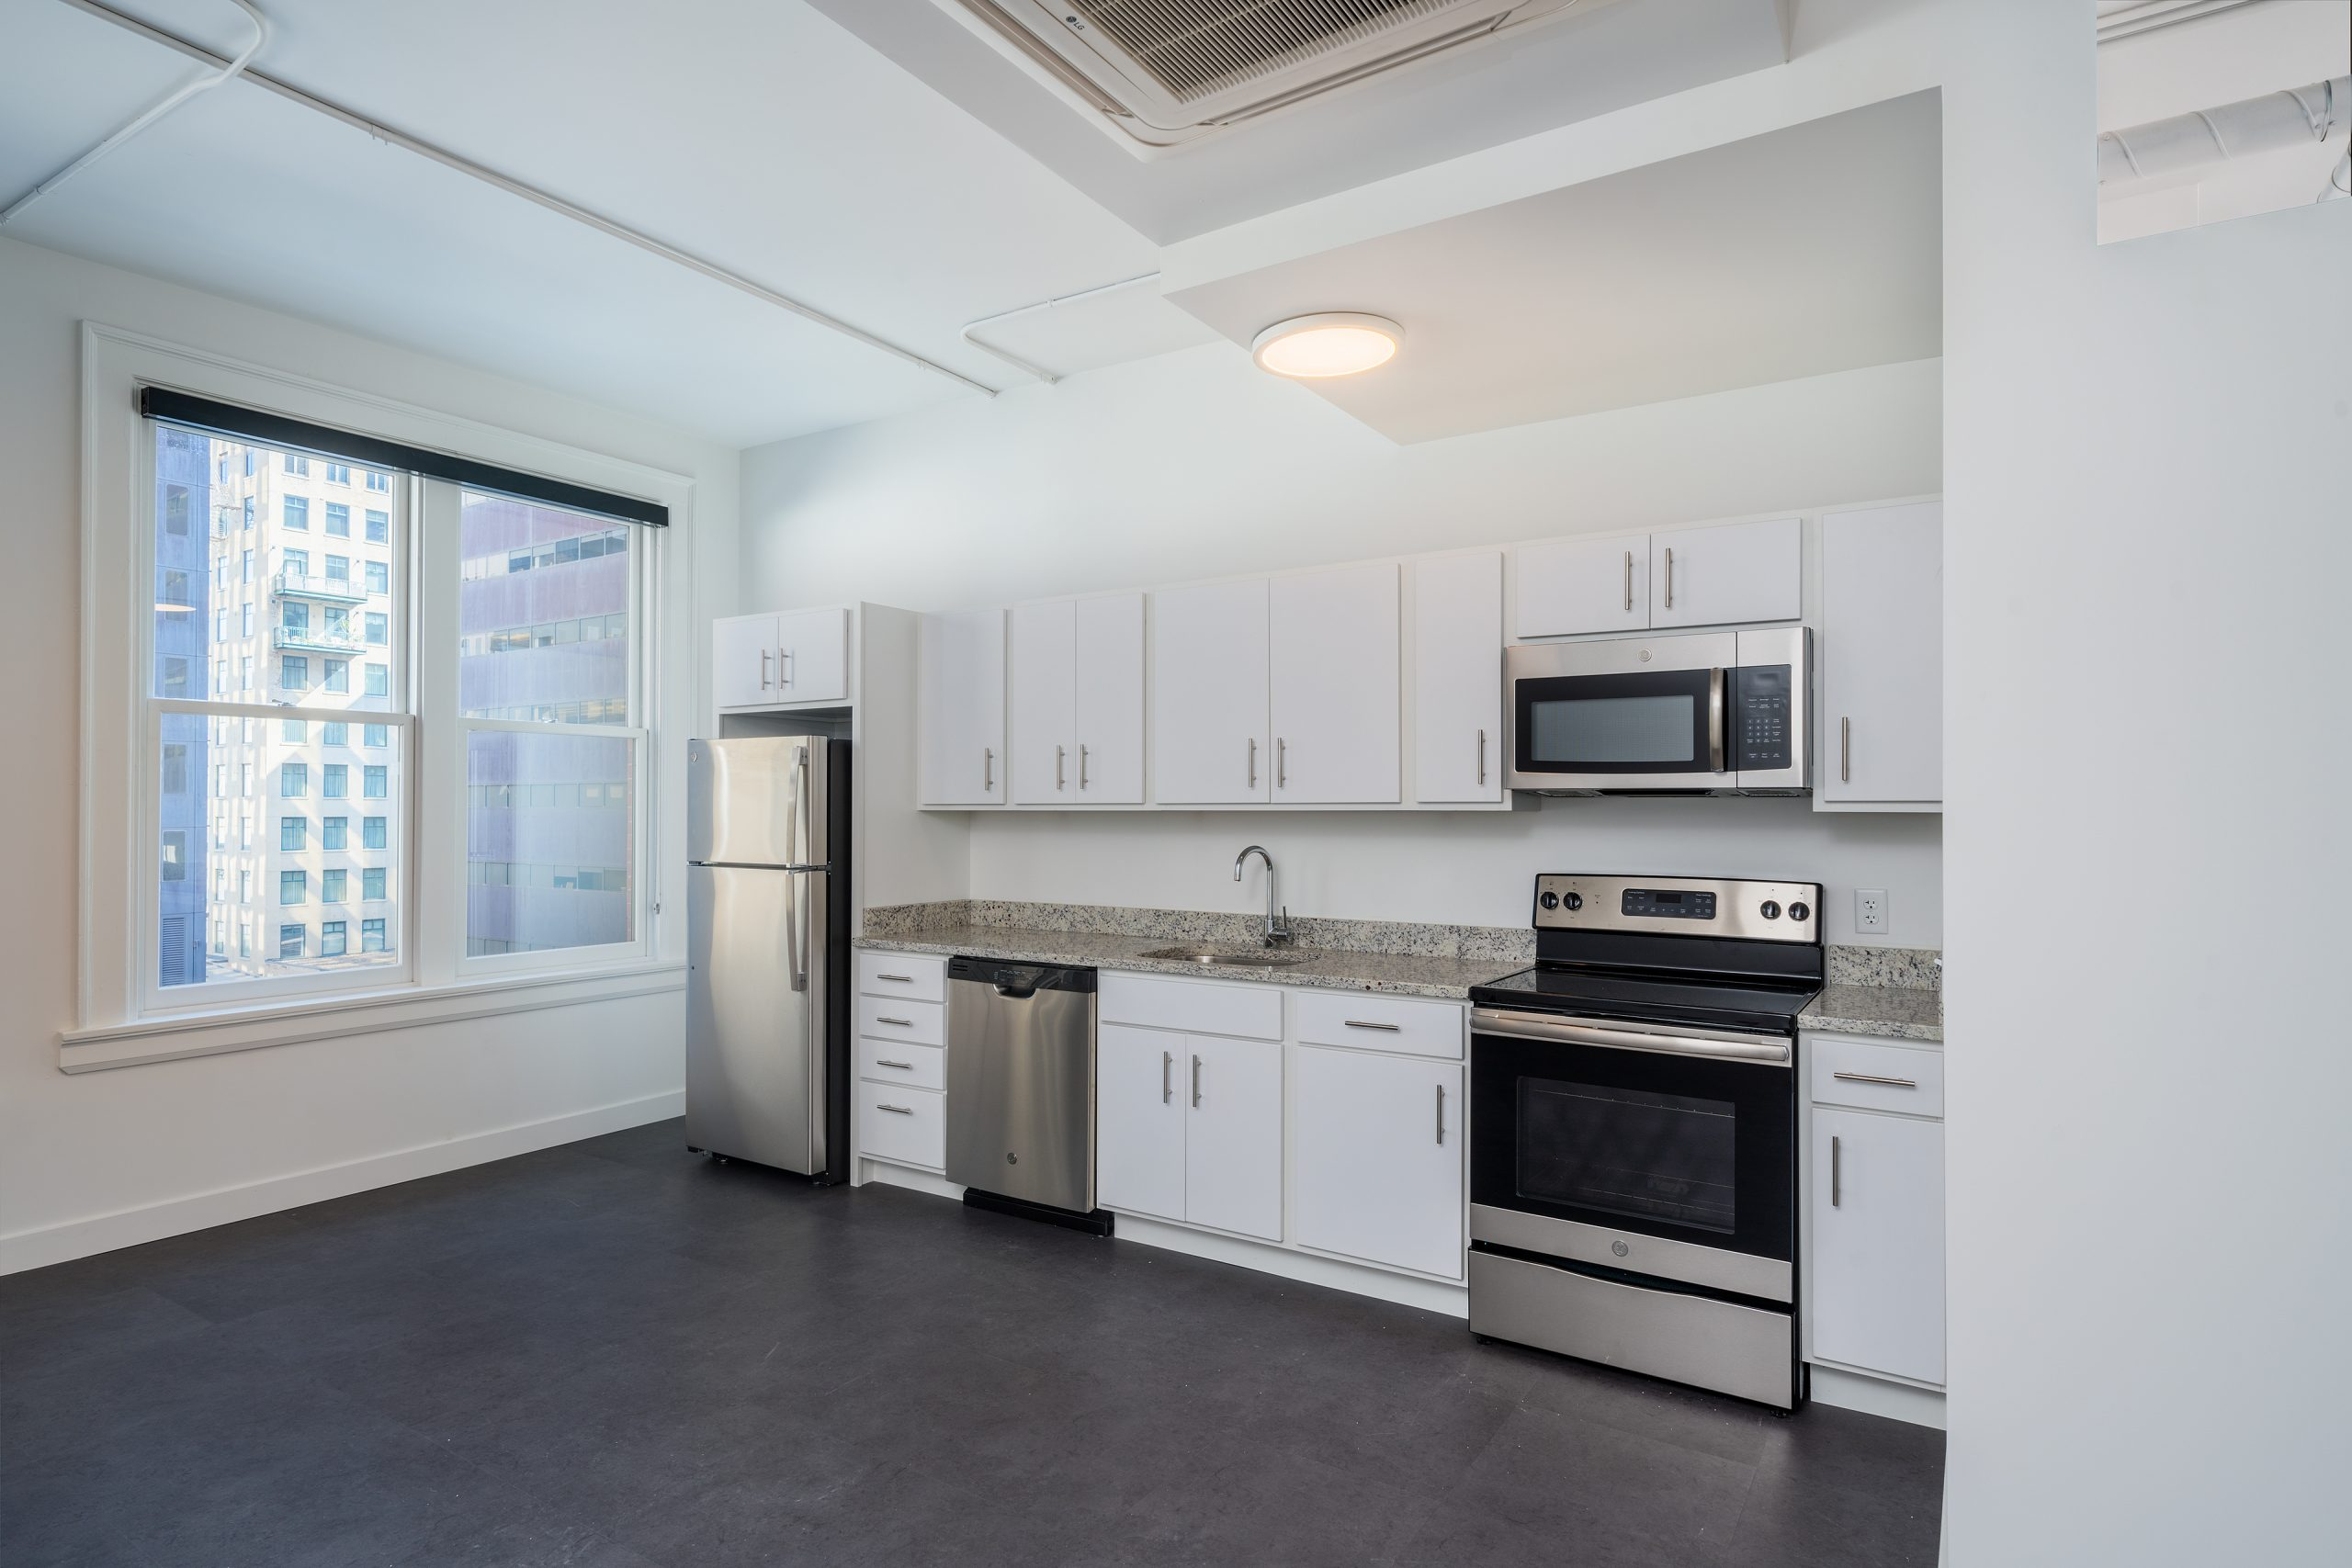 Modern sleek kitchen in studio apartment in the Edna Griffin building with stainless steel appliances and white cabinets